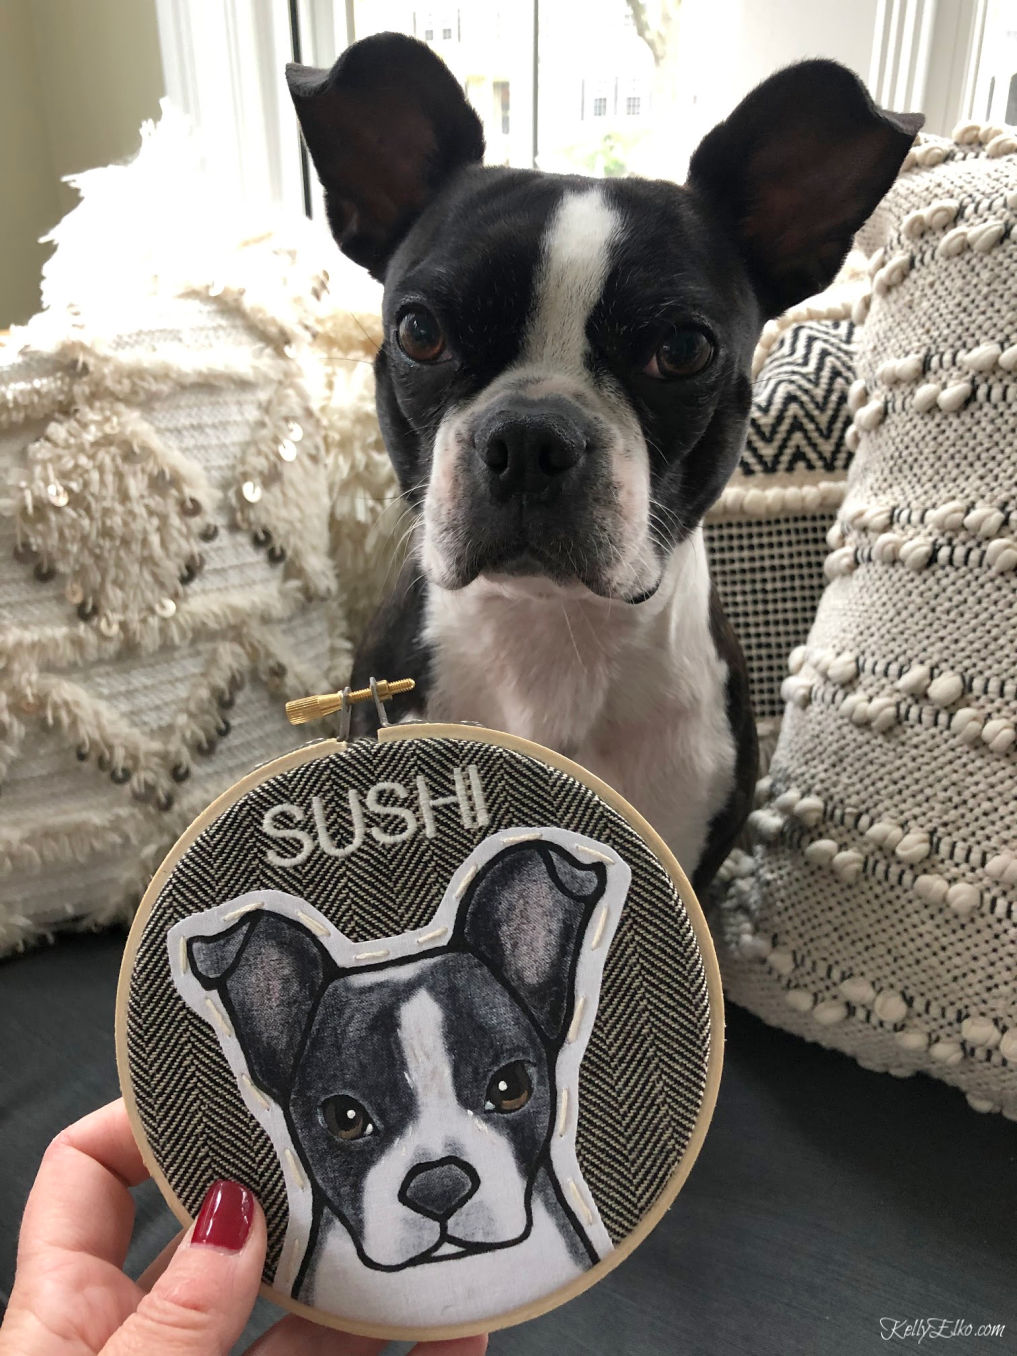 How adorable is the custom painted pet portrait in a little embroidery hoop! kellyelko.com #pets #petgifts #doglover #giftideas #uniquegifts